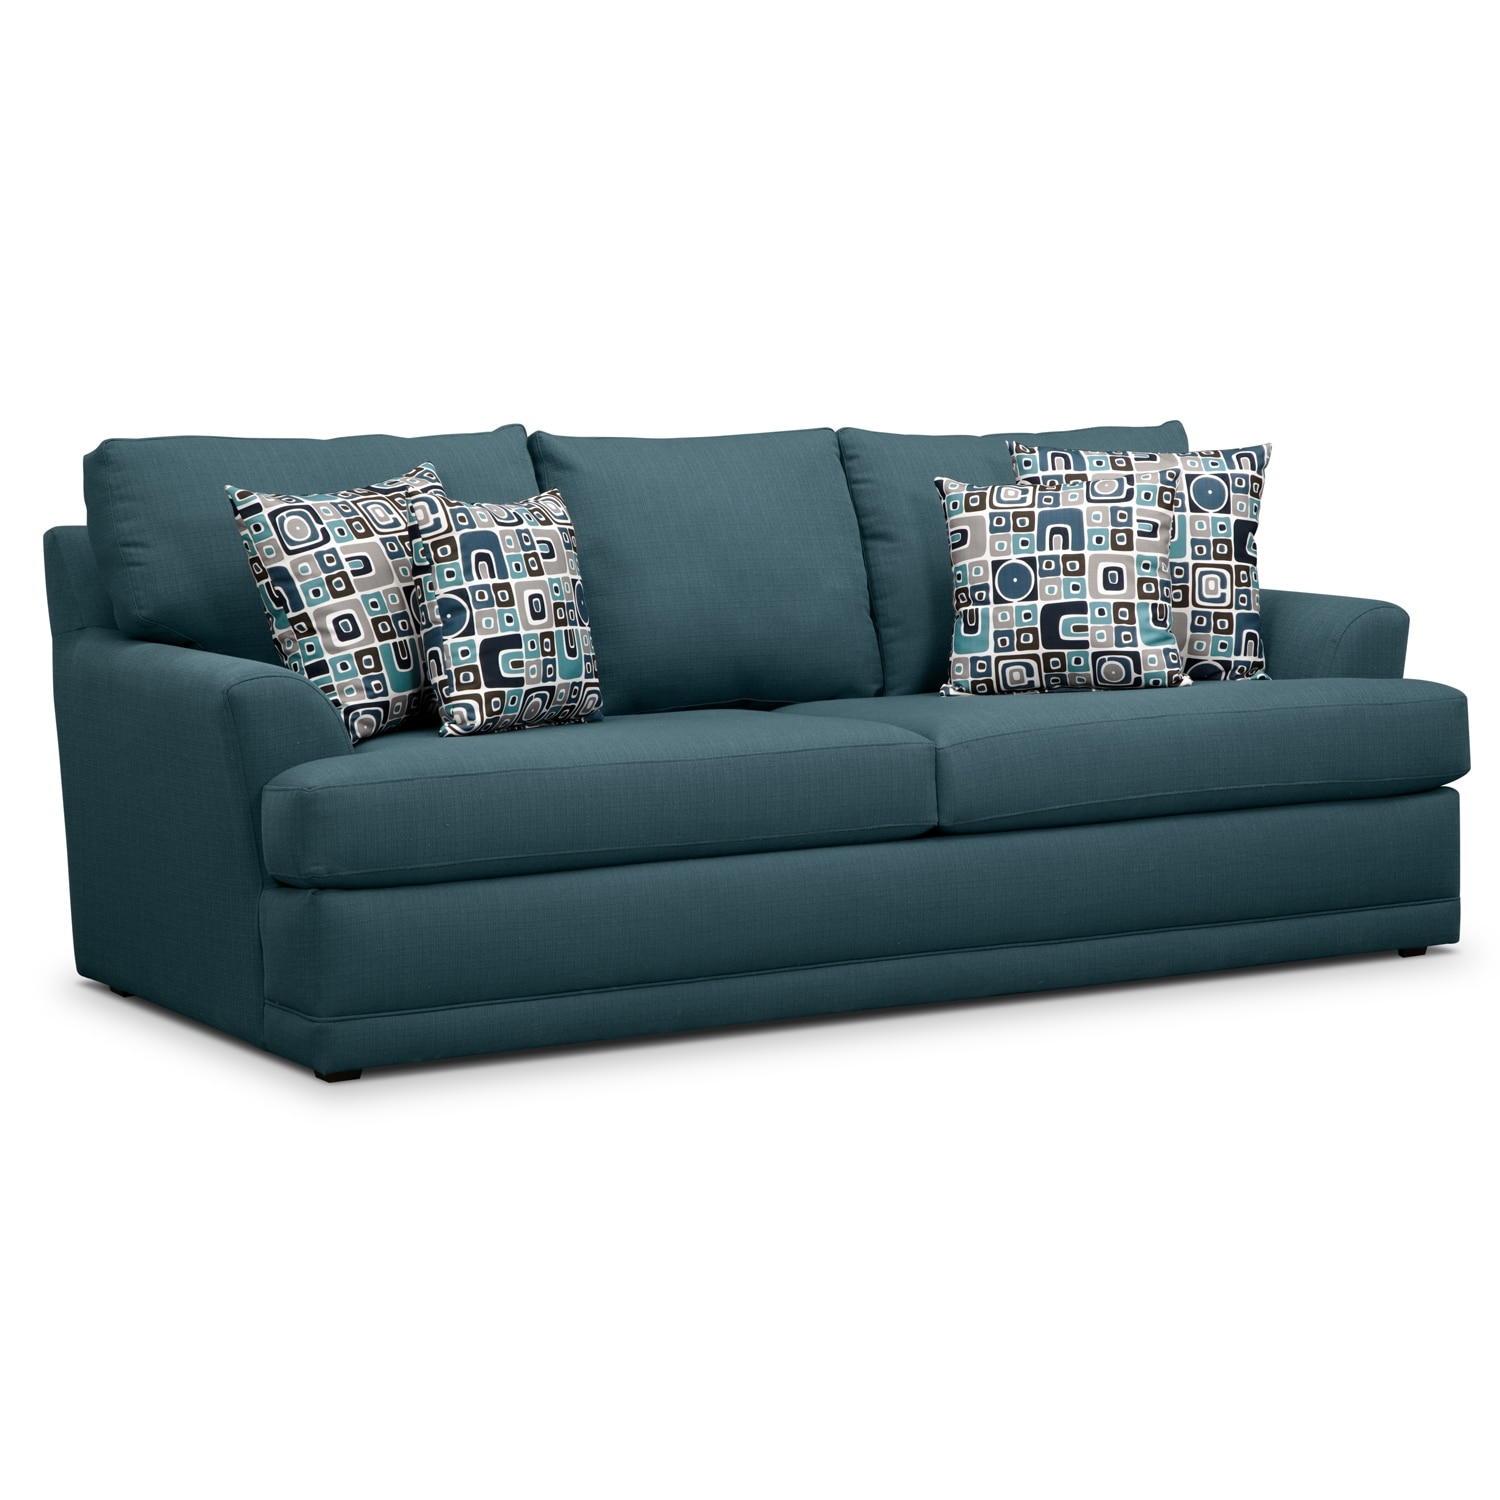 Living Room Furniture - Kismet Sofa